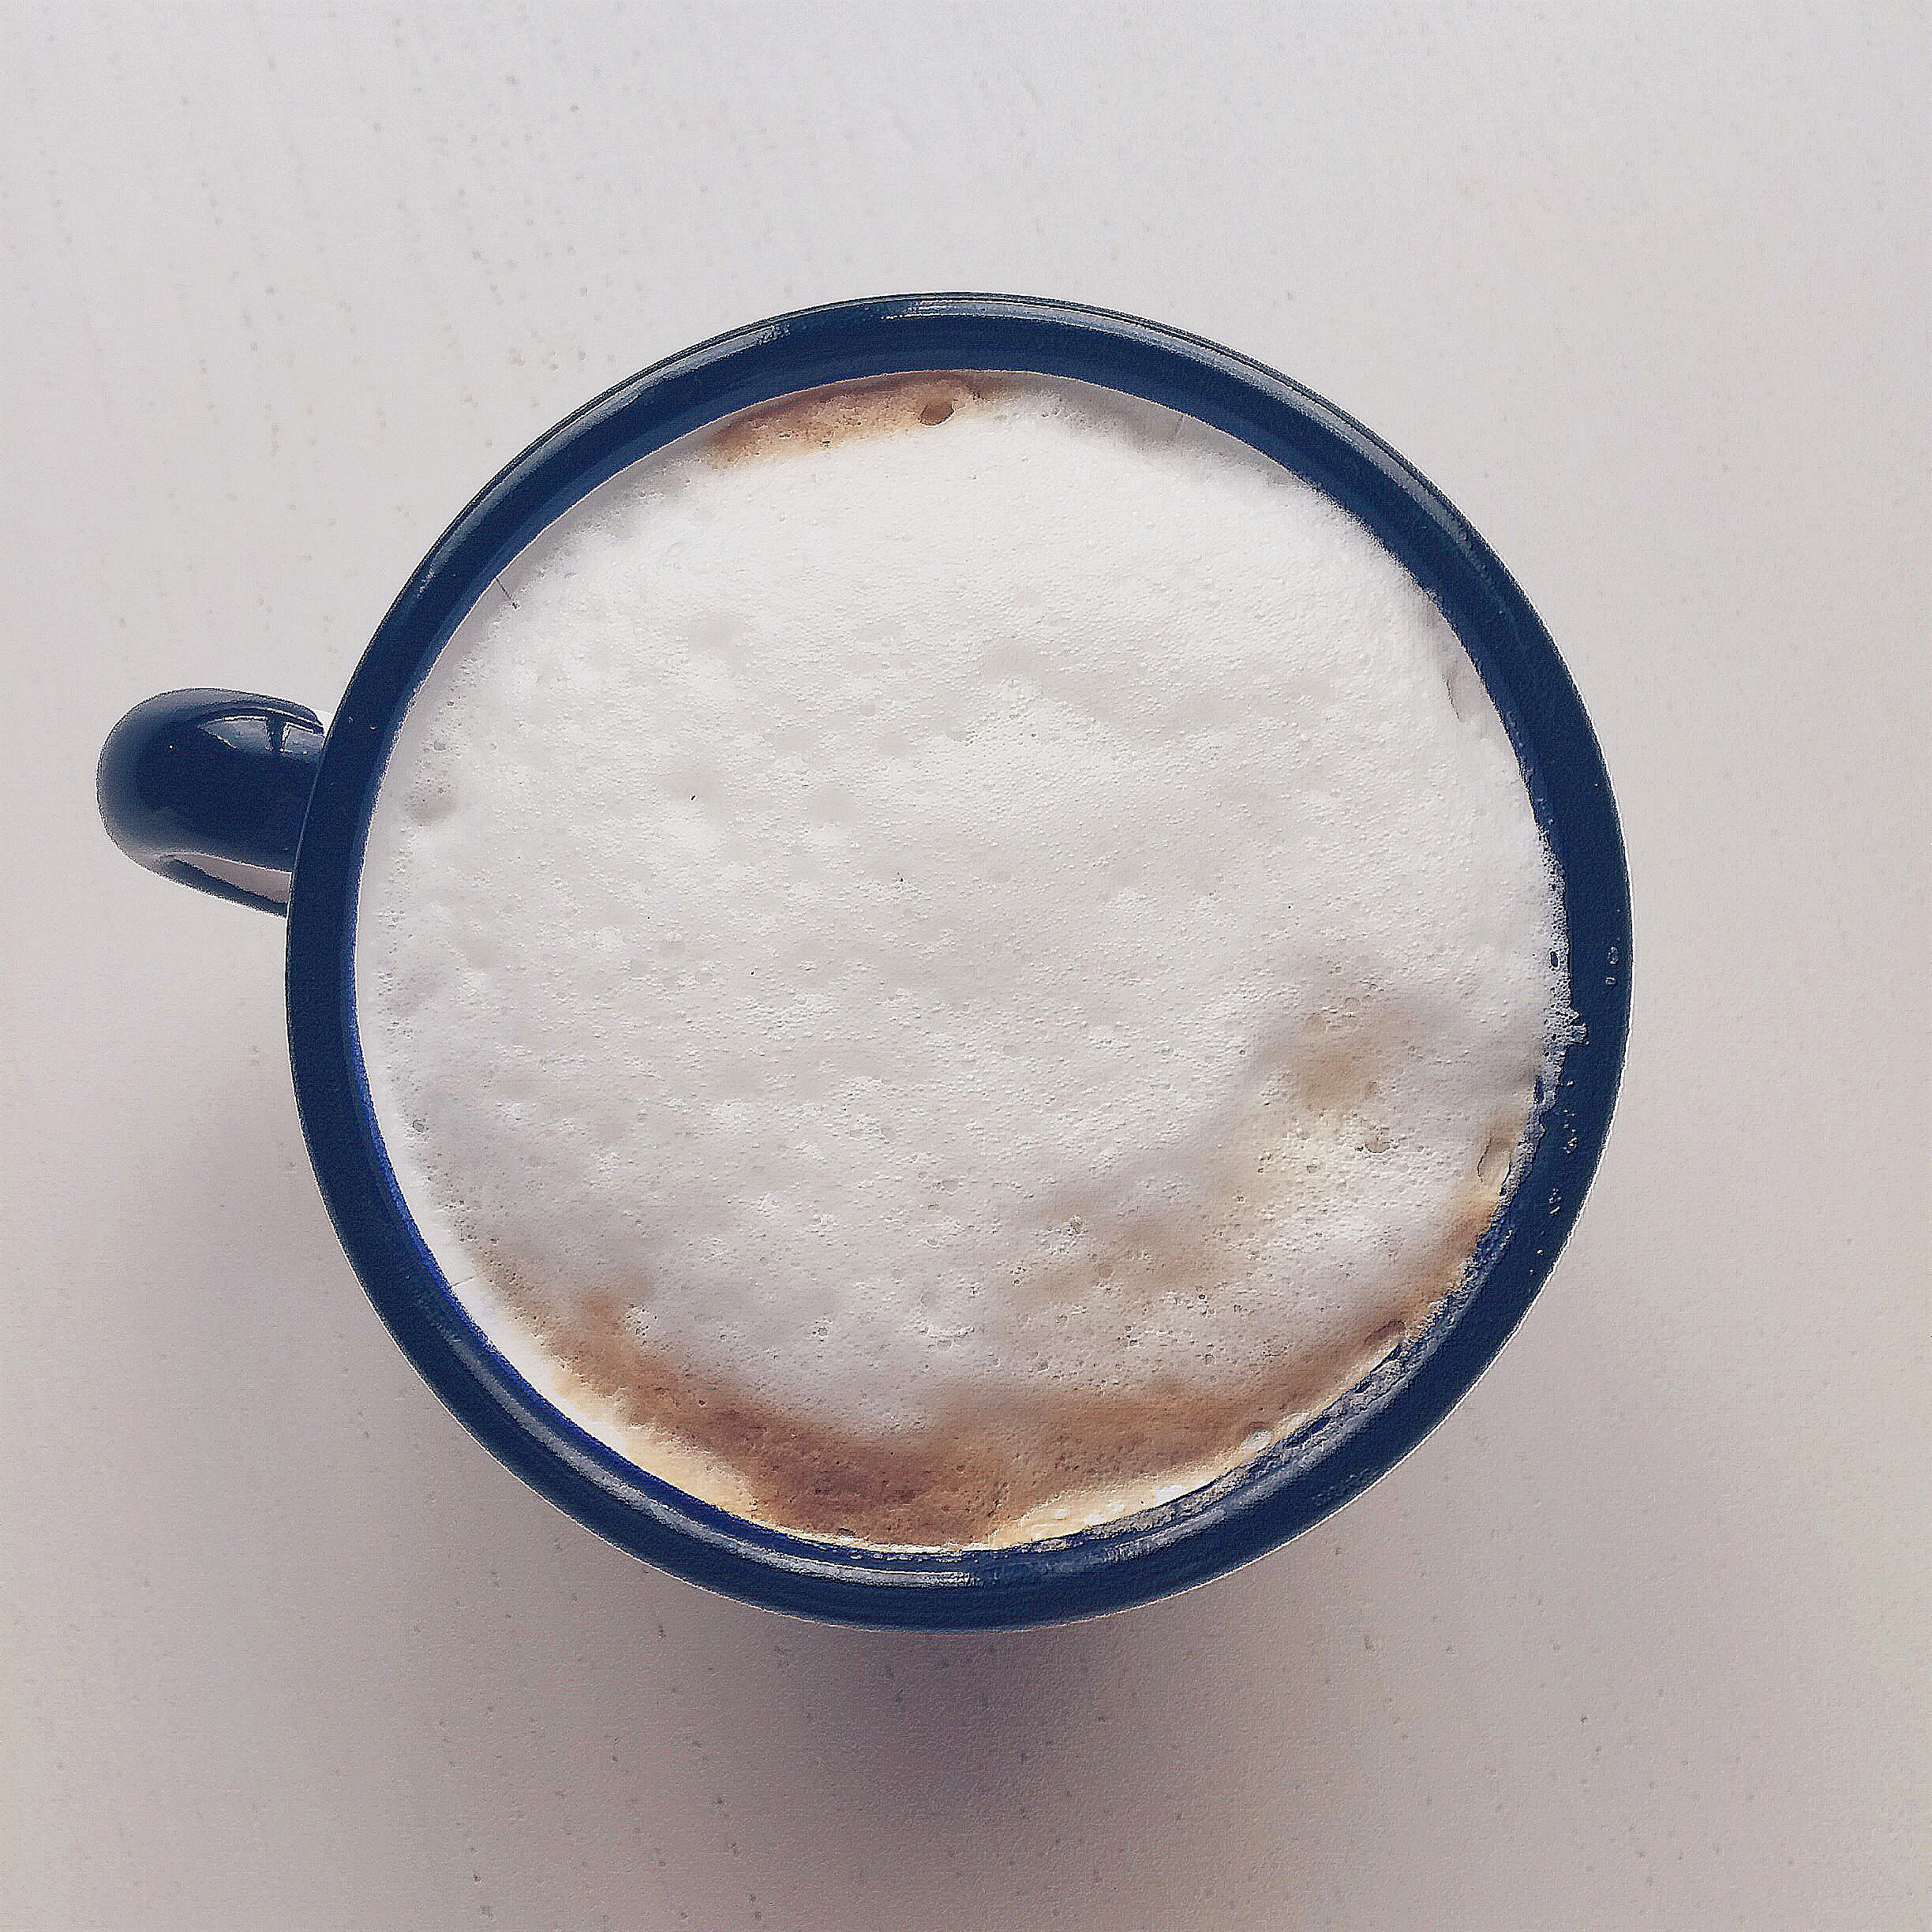 How To Make A Homemade Cappuccino Without A Machine